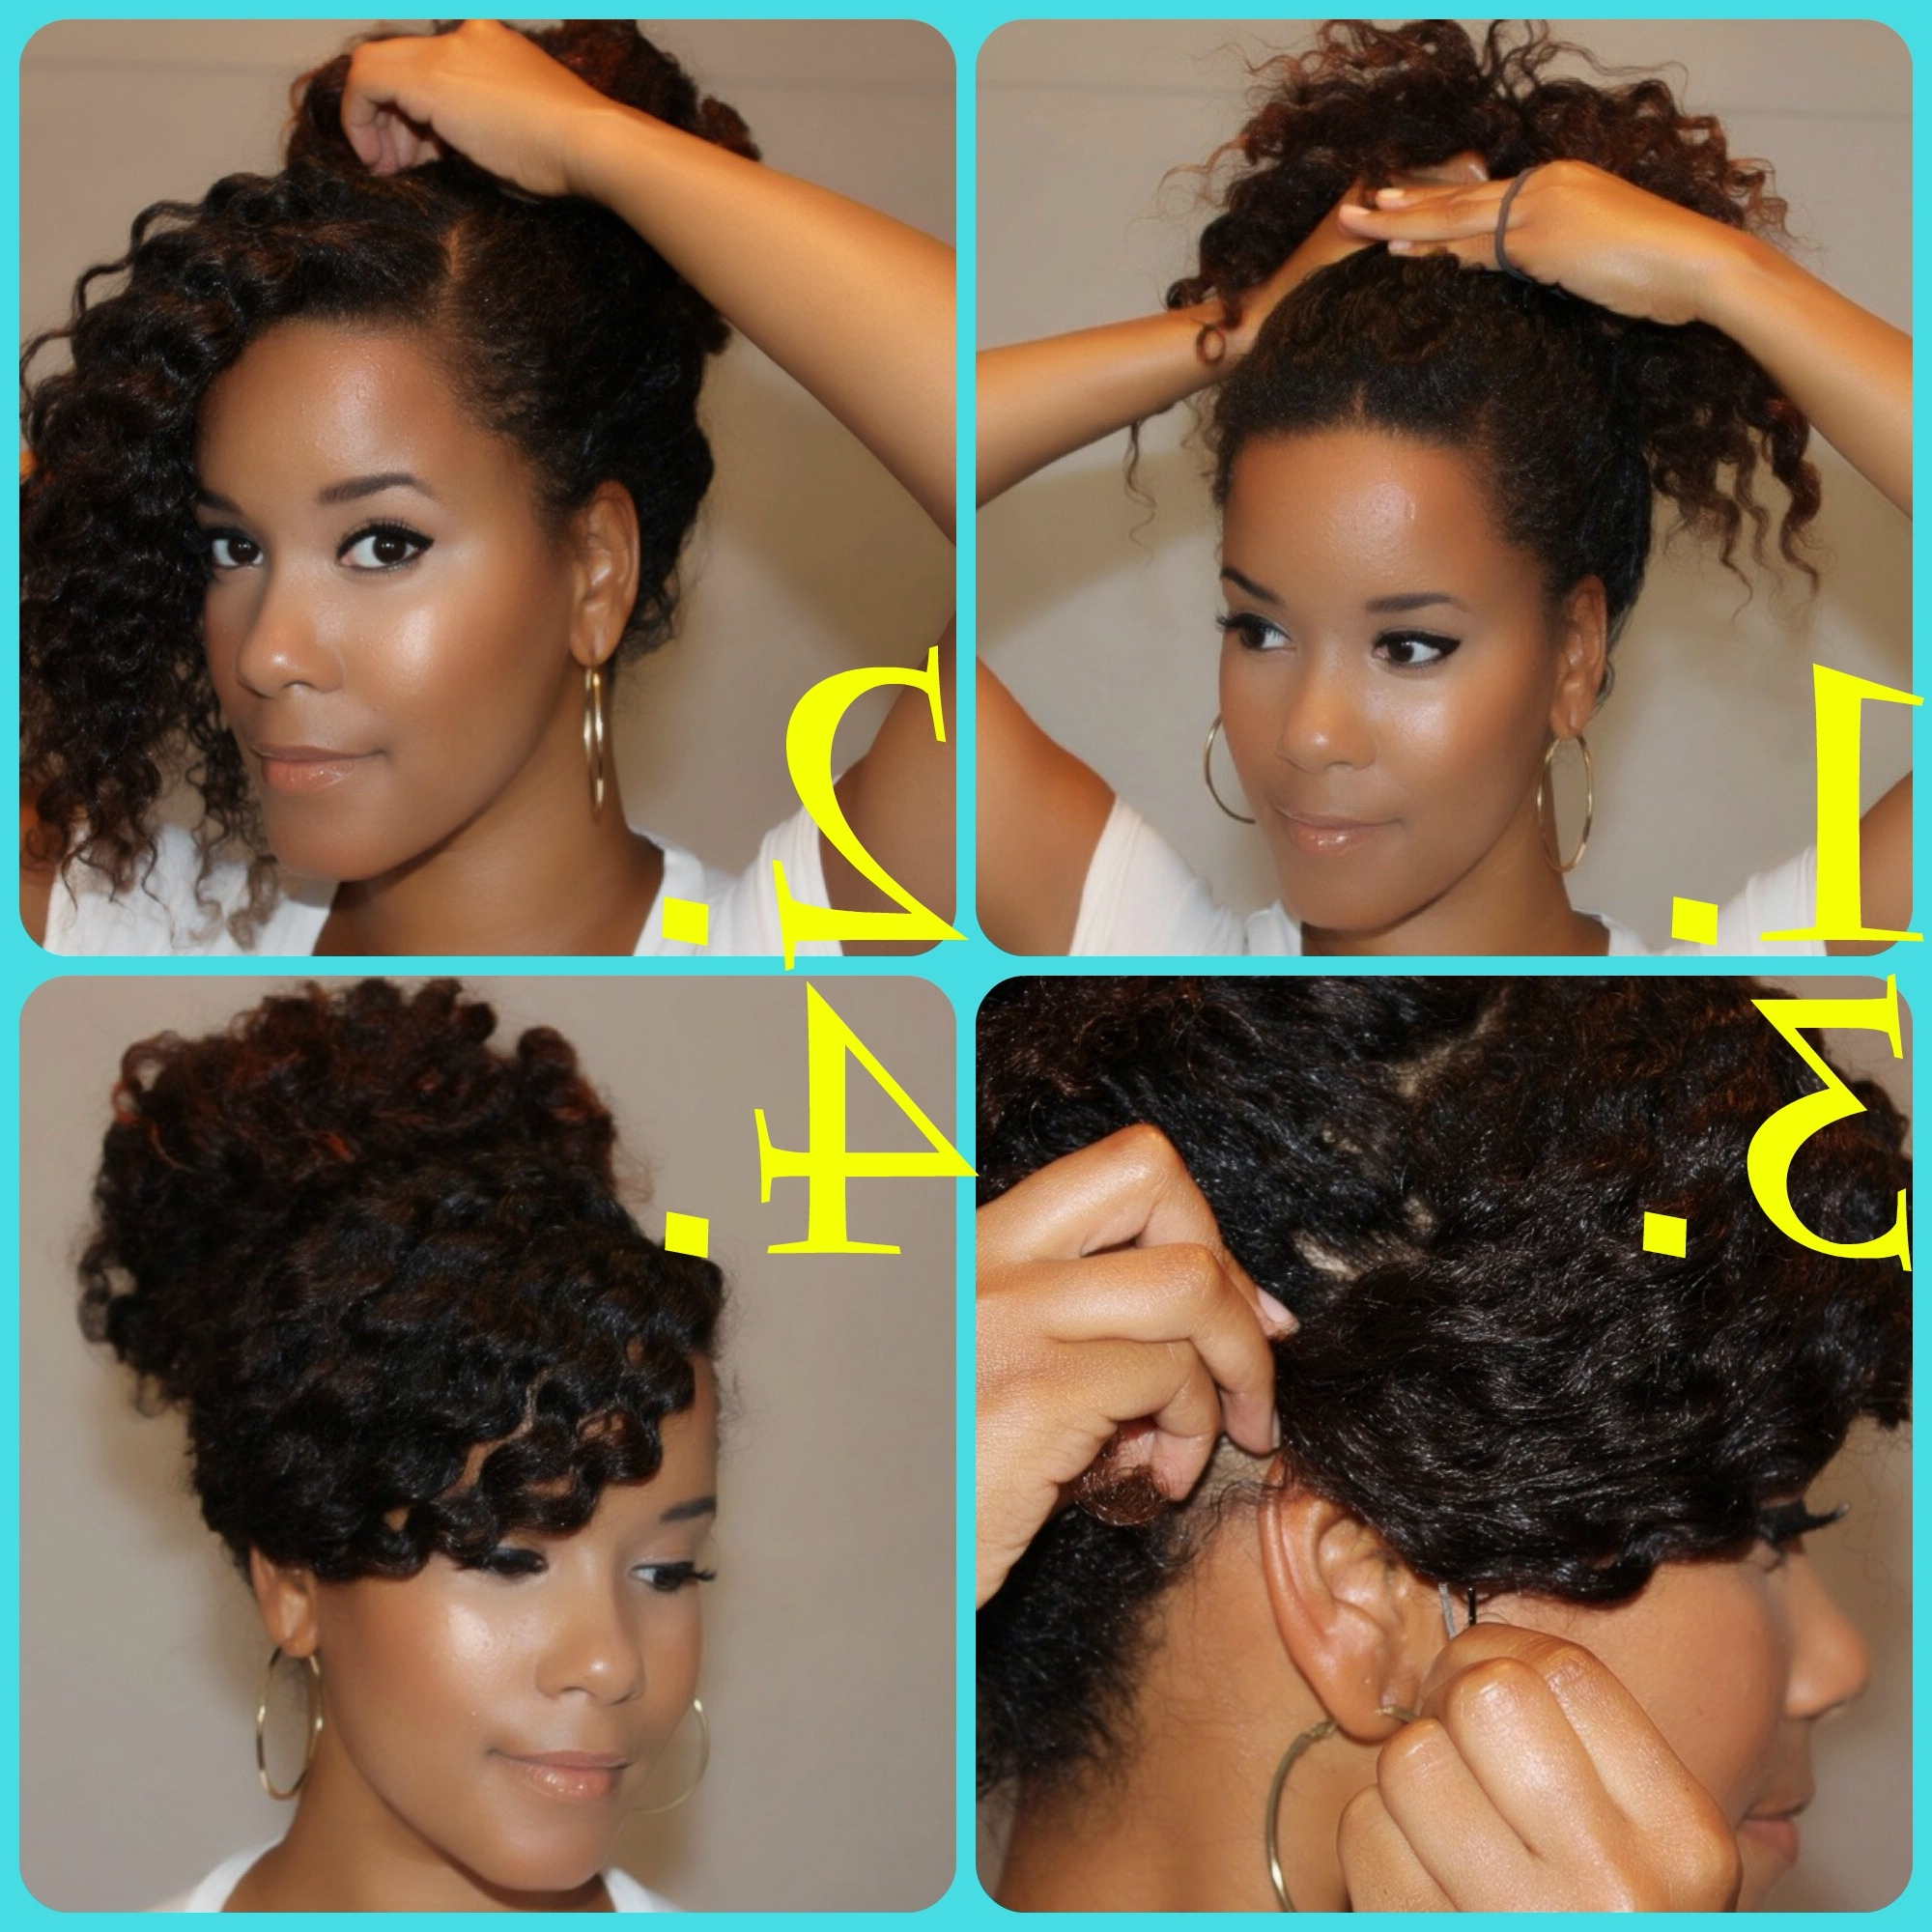 Natural Hair Diy : 5 Back To School Inspired Styles | High Bun Regarding Updo Hairstyles For Super Curly Hair (View 13 of 15)